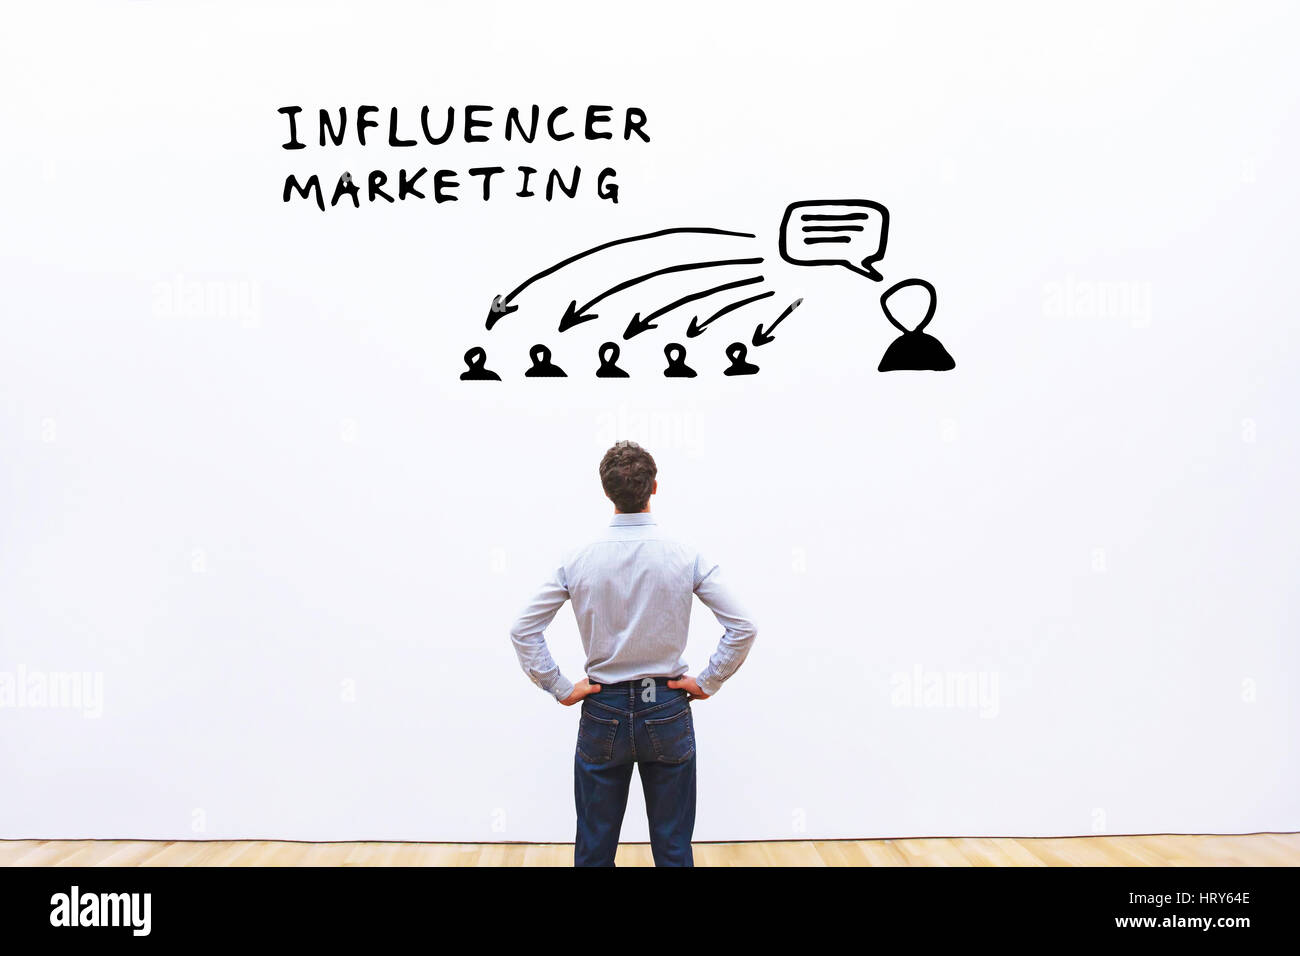 influencer marketing concept in business - Stock Image